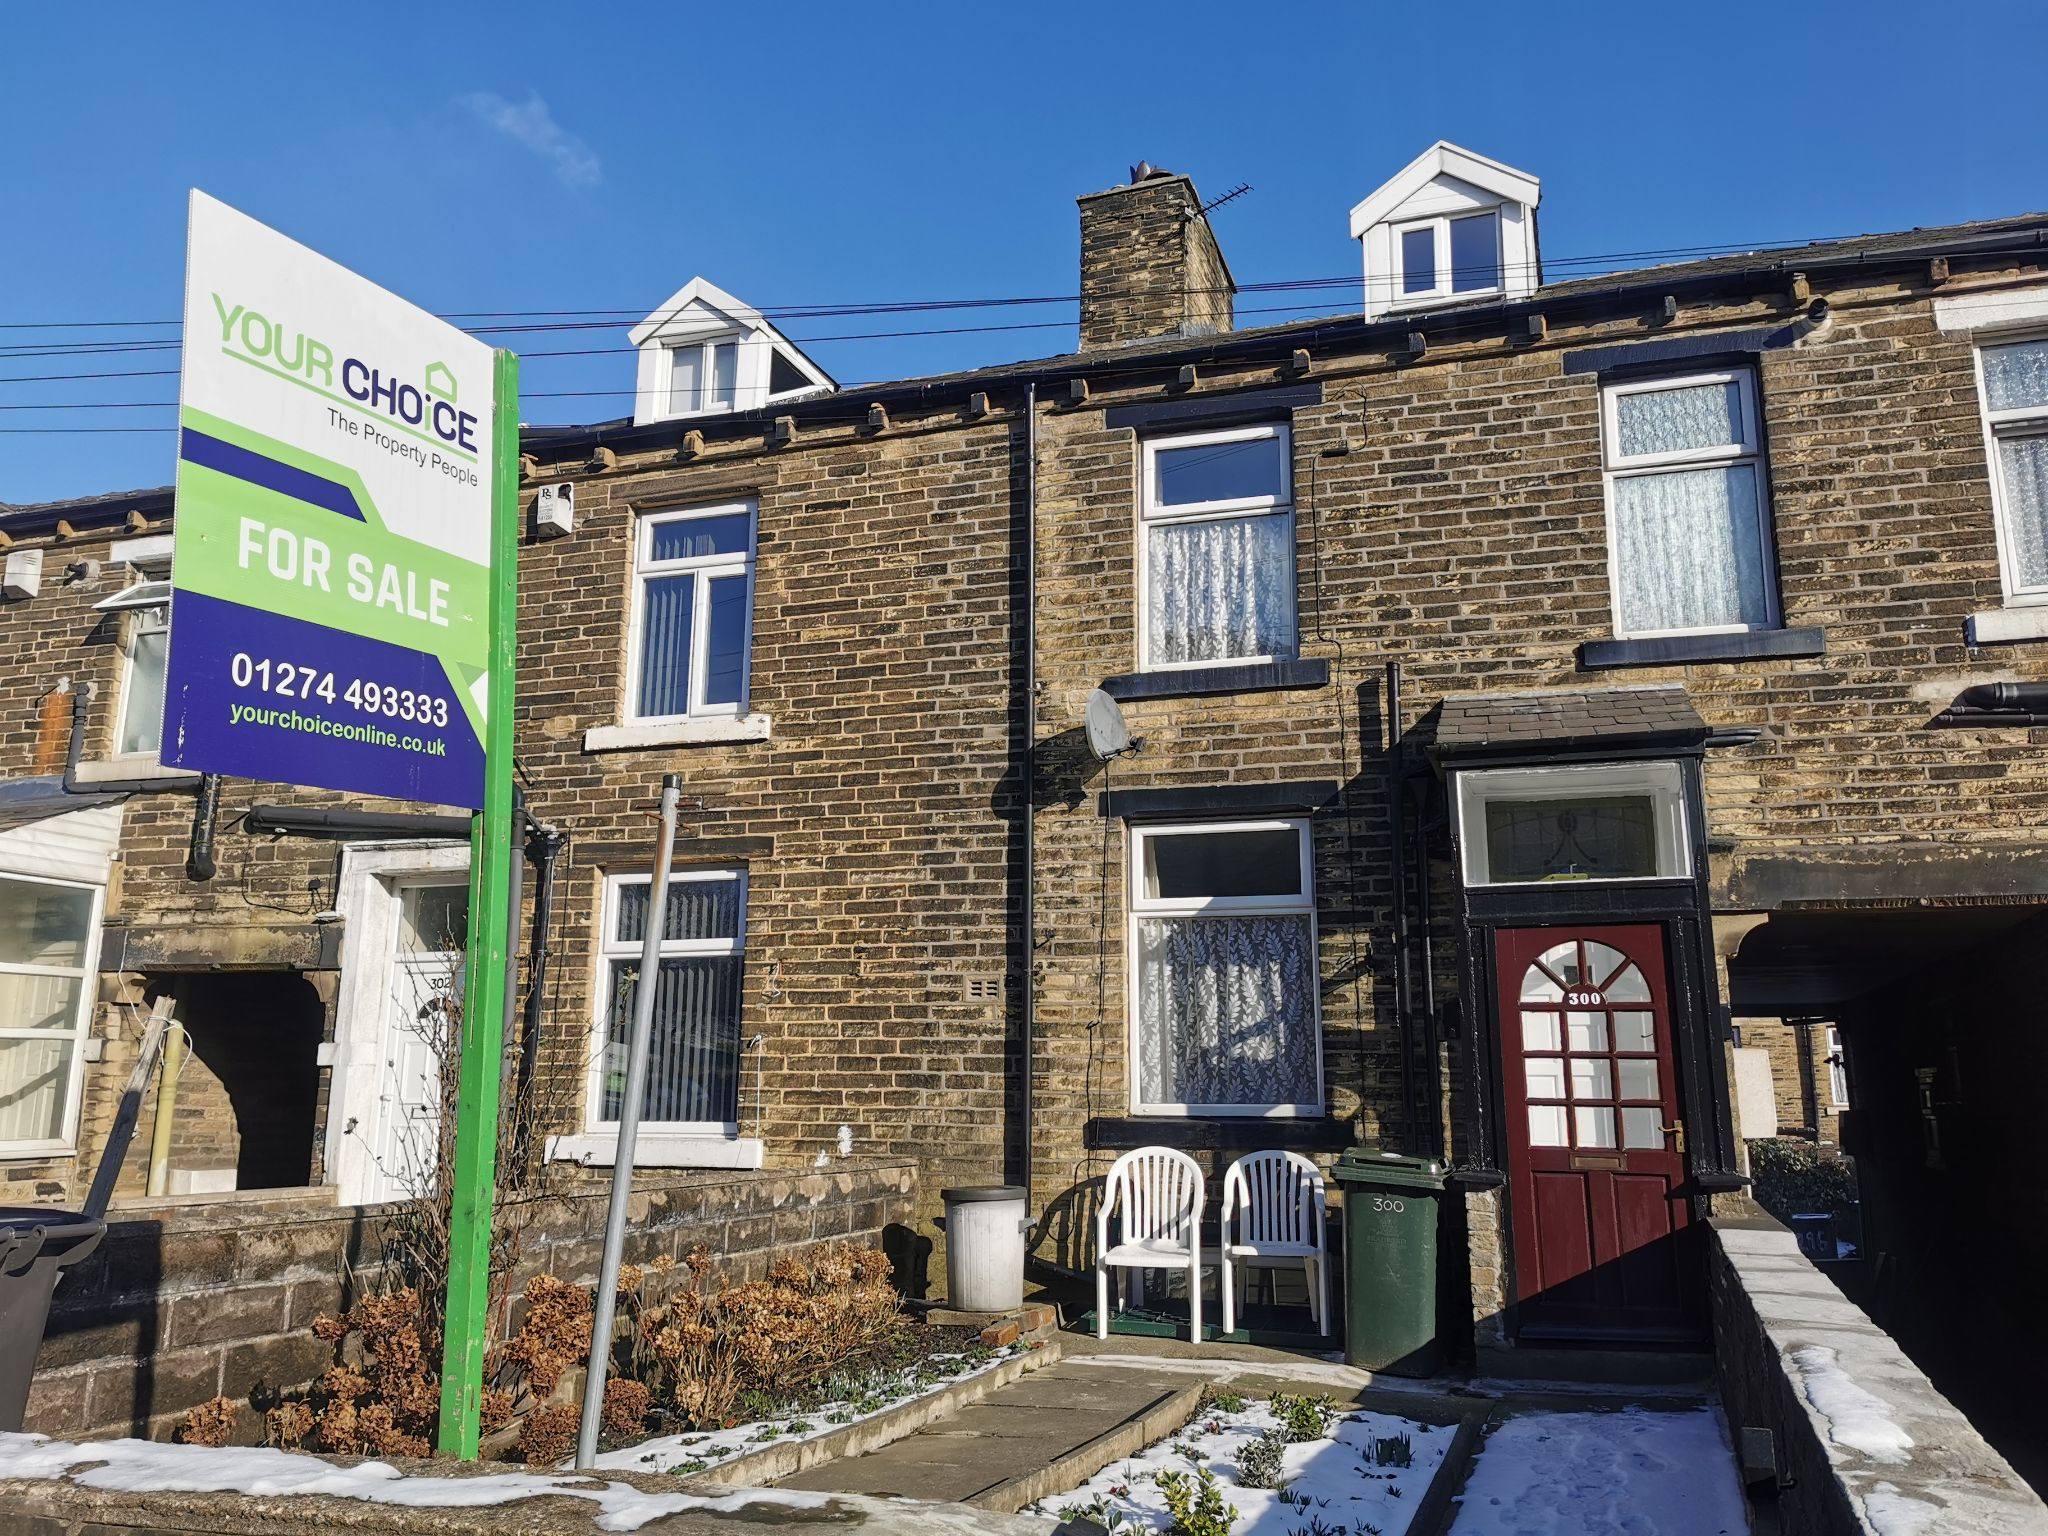 2 bedroom mid terraced house To Let in Bradford - Photograph 1.